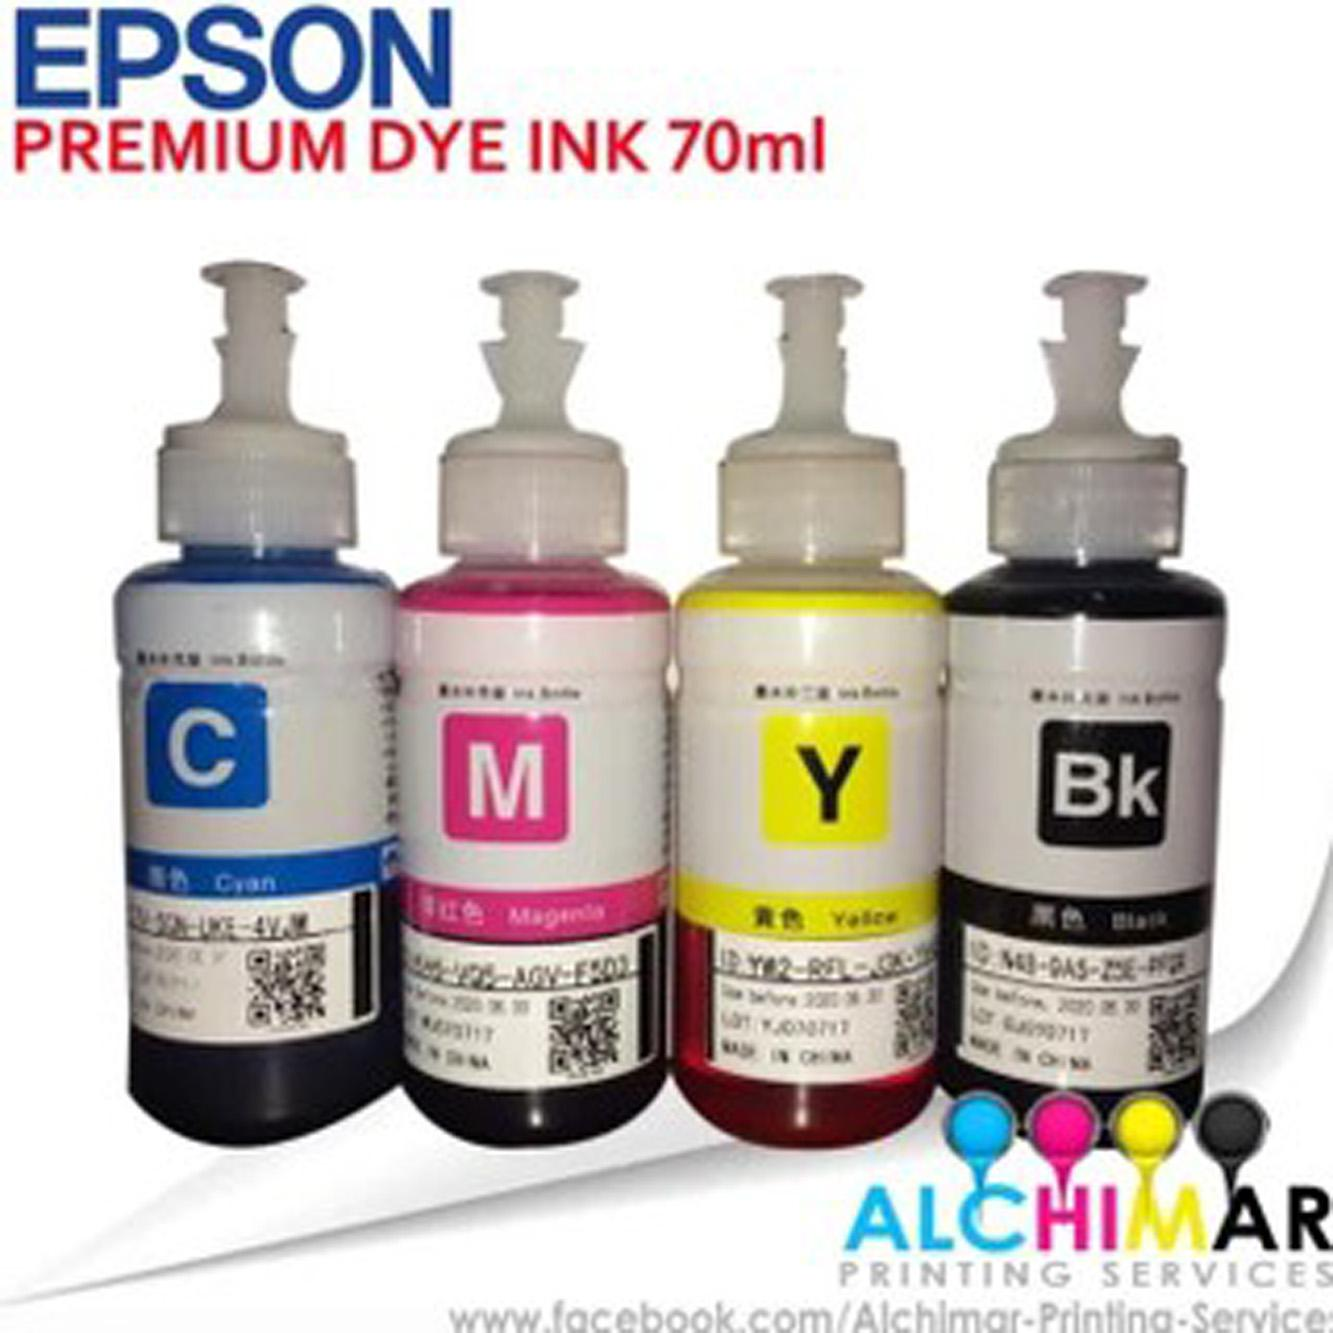 Epson Premium Dye Ink 70ml 4pcs Already By Alchimar Printing Services.